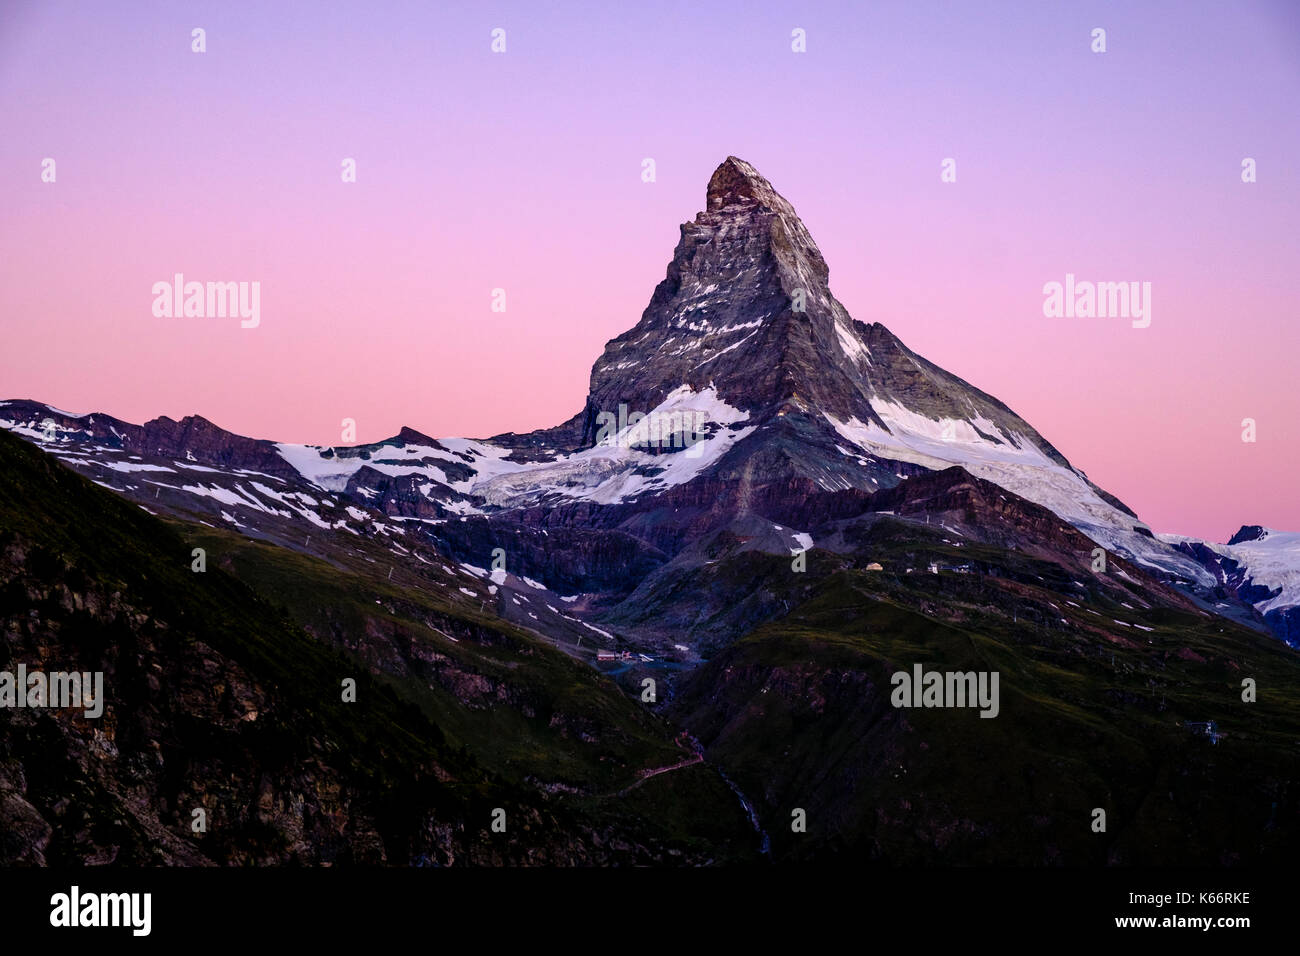 The East and North Face of the Matterhorn, Monte Cervino, with purple sky before sunrise - Stock Image